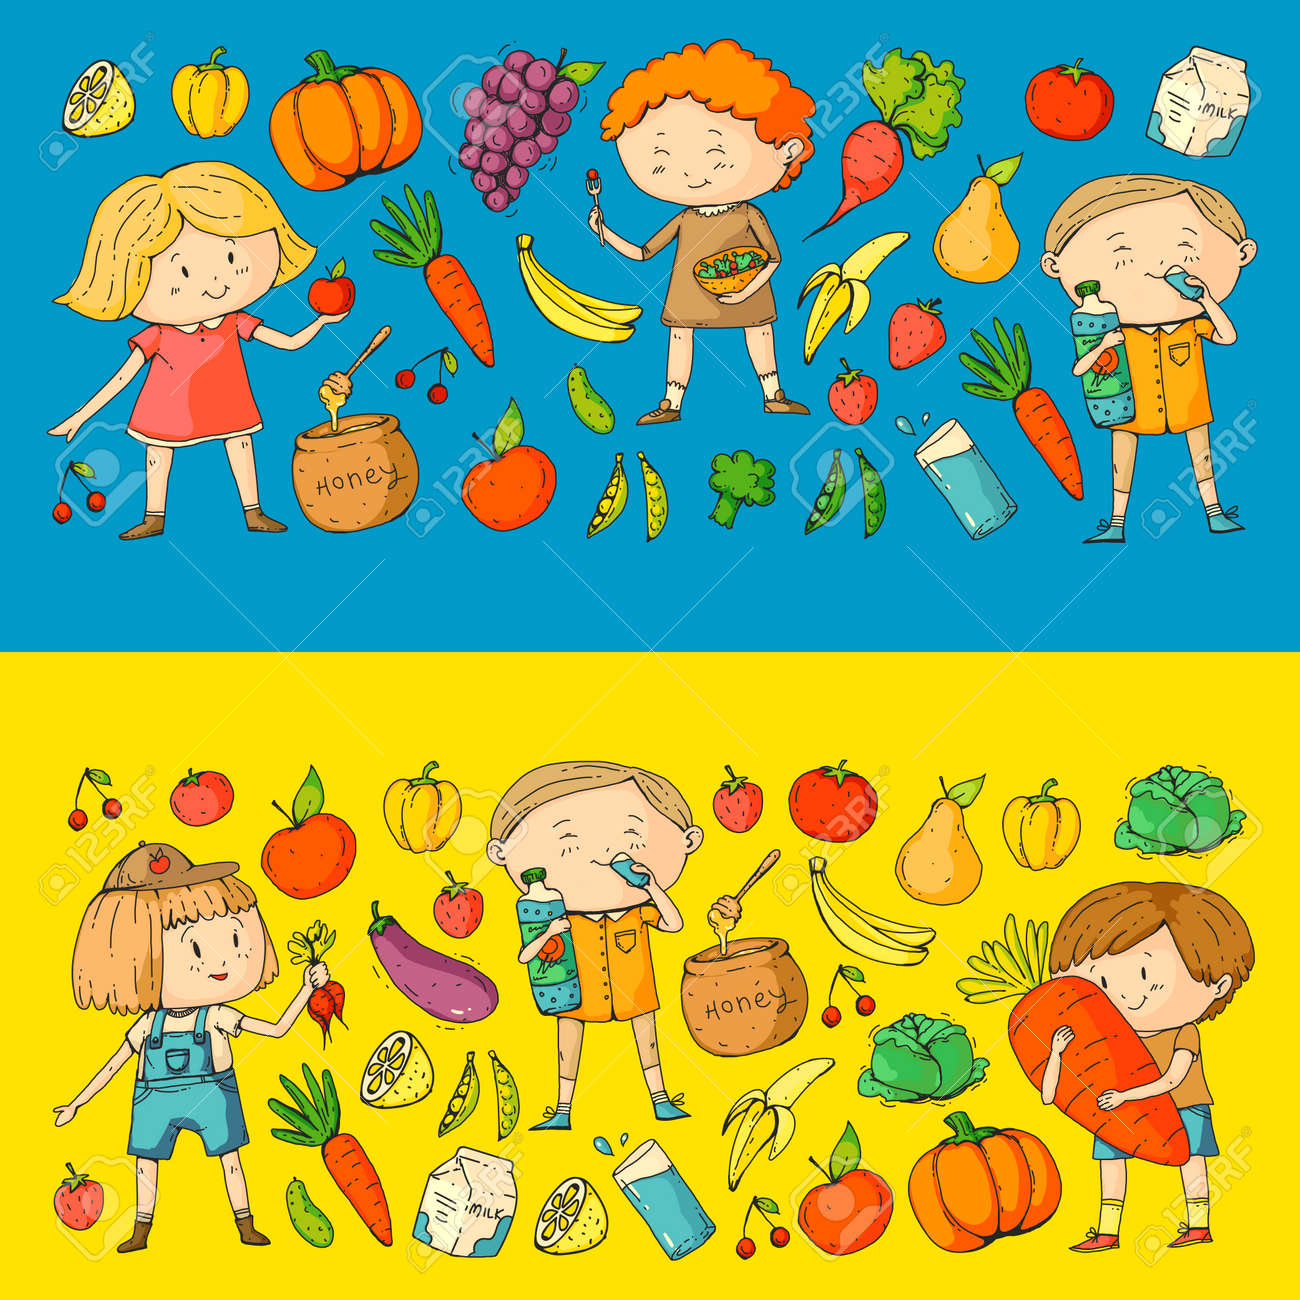 Children School And Kindergarten Healthy Food And Drinks Kids Royalty Free Cliparts Vectors And Stock Illustration Image 94691940